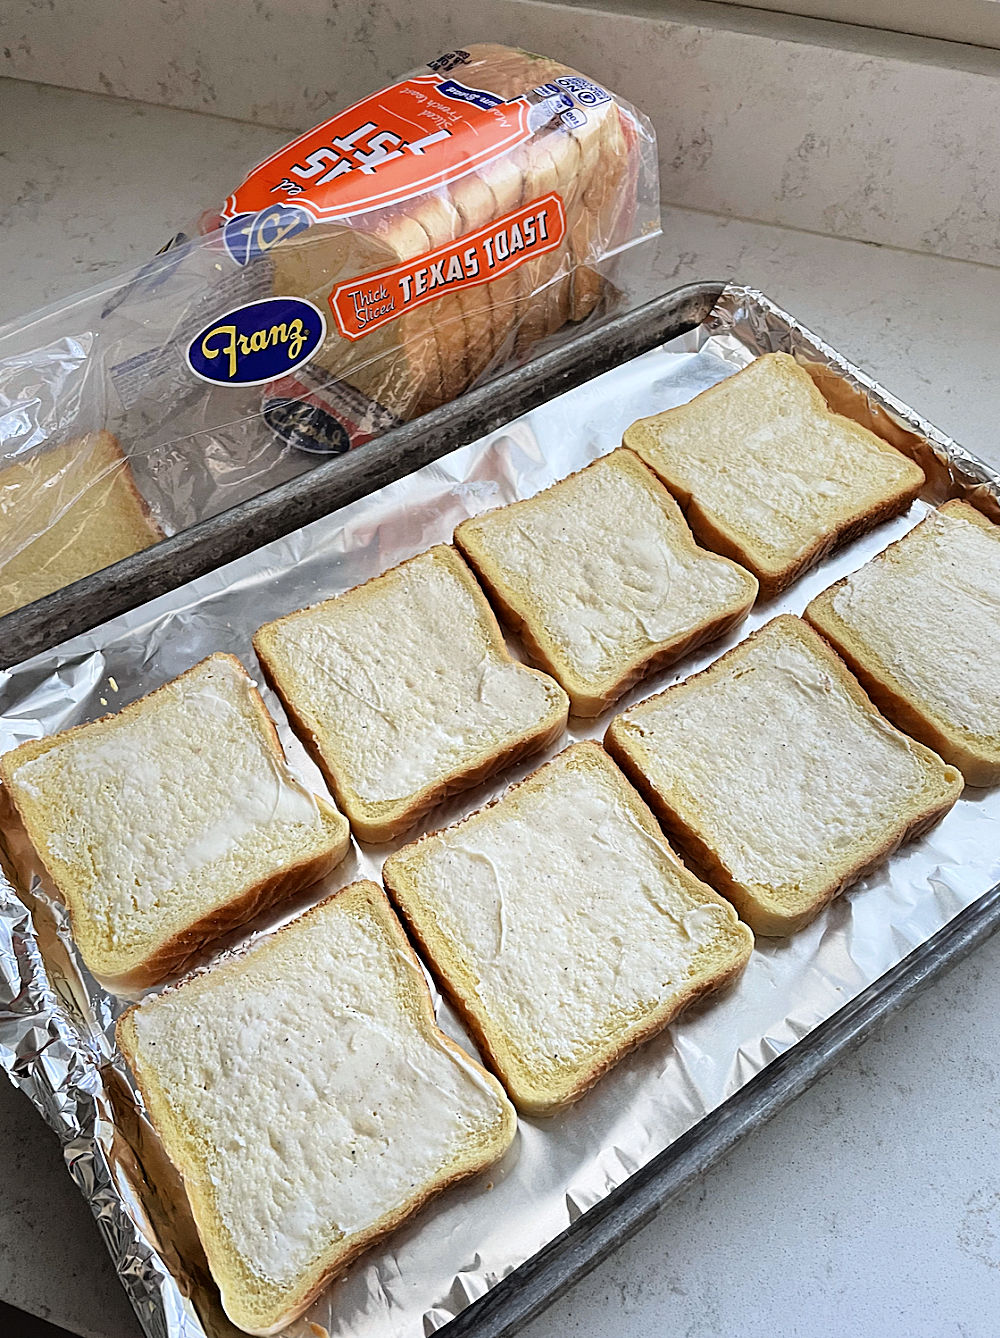 Franz Texas Toast on foil covered sheet pan